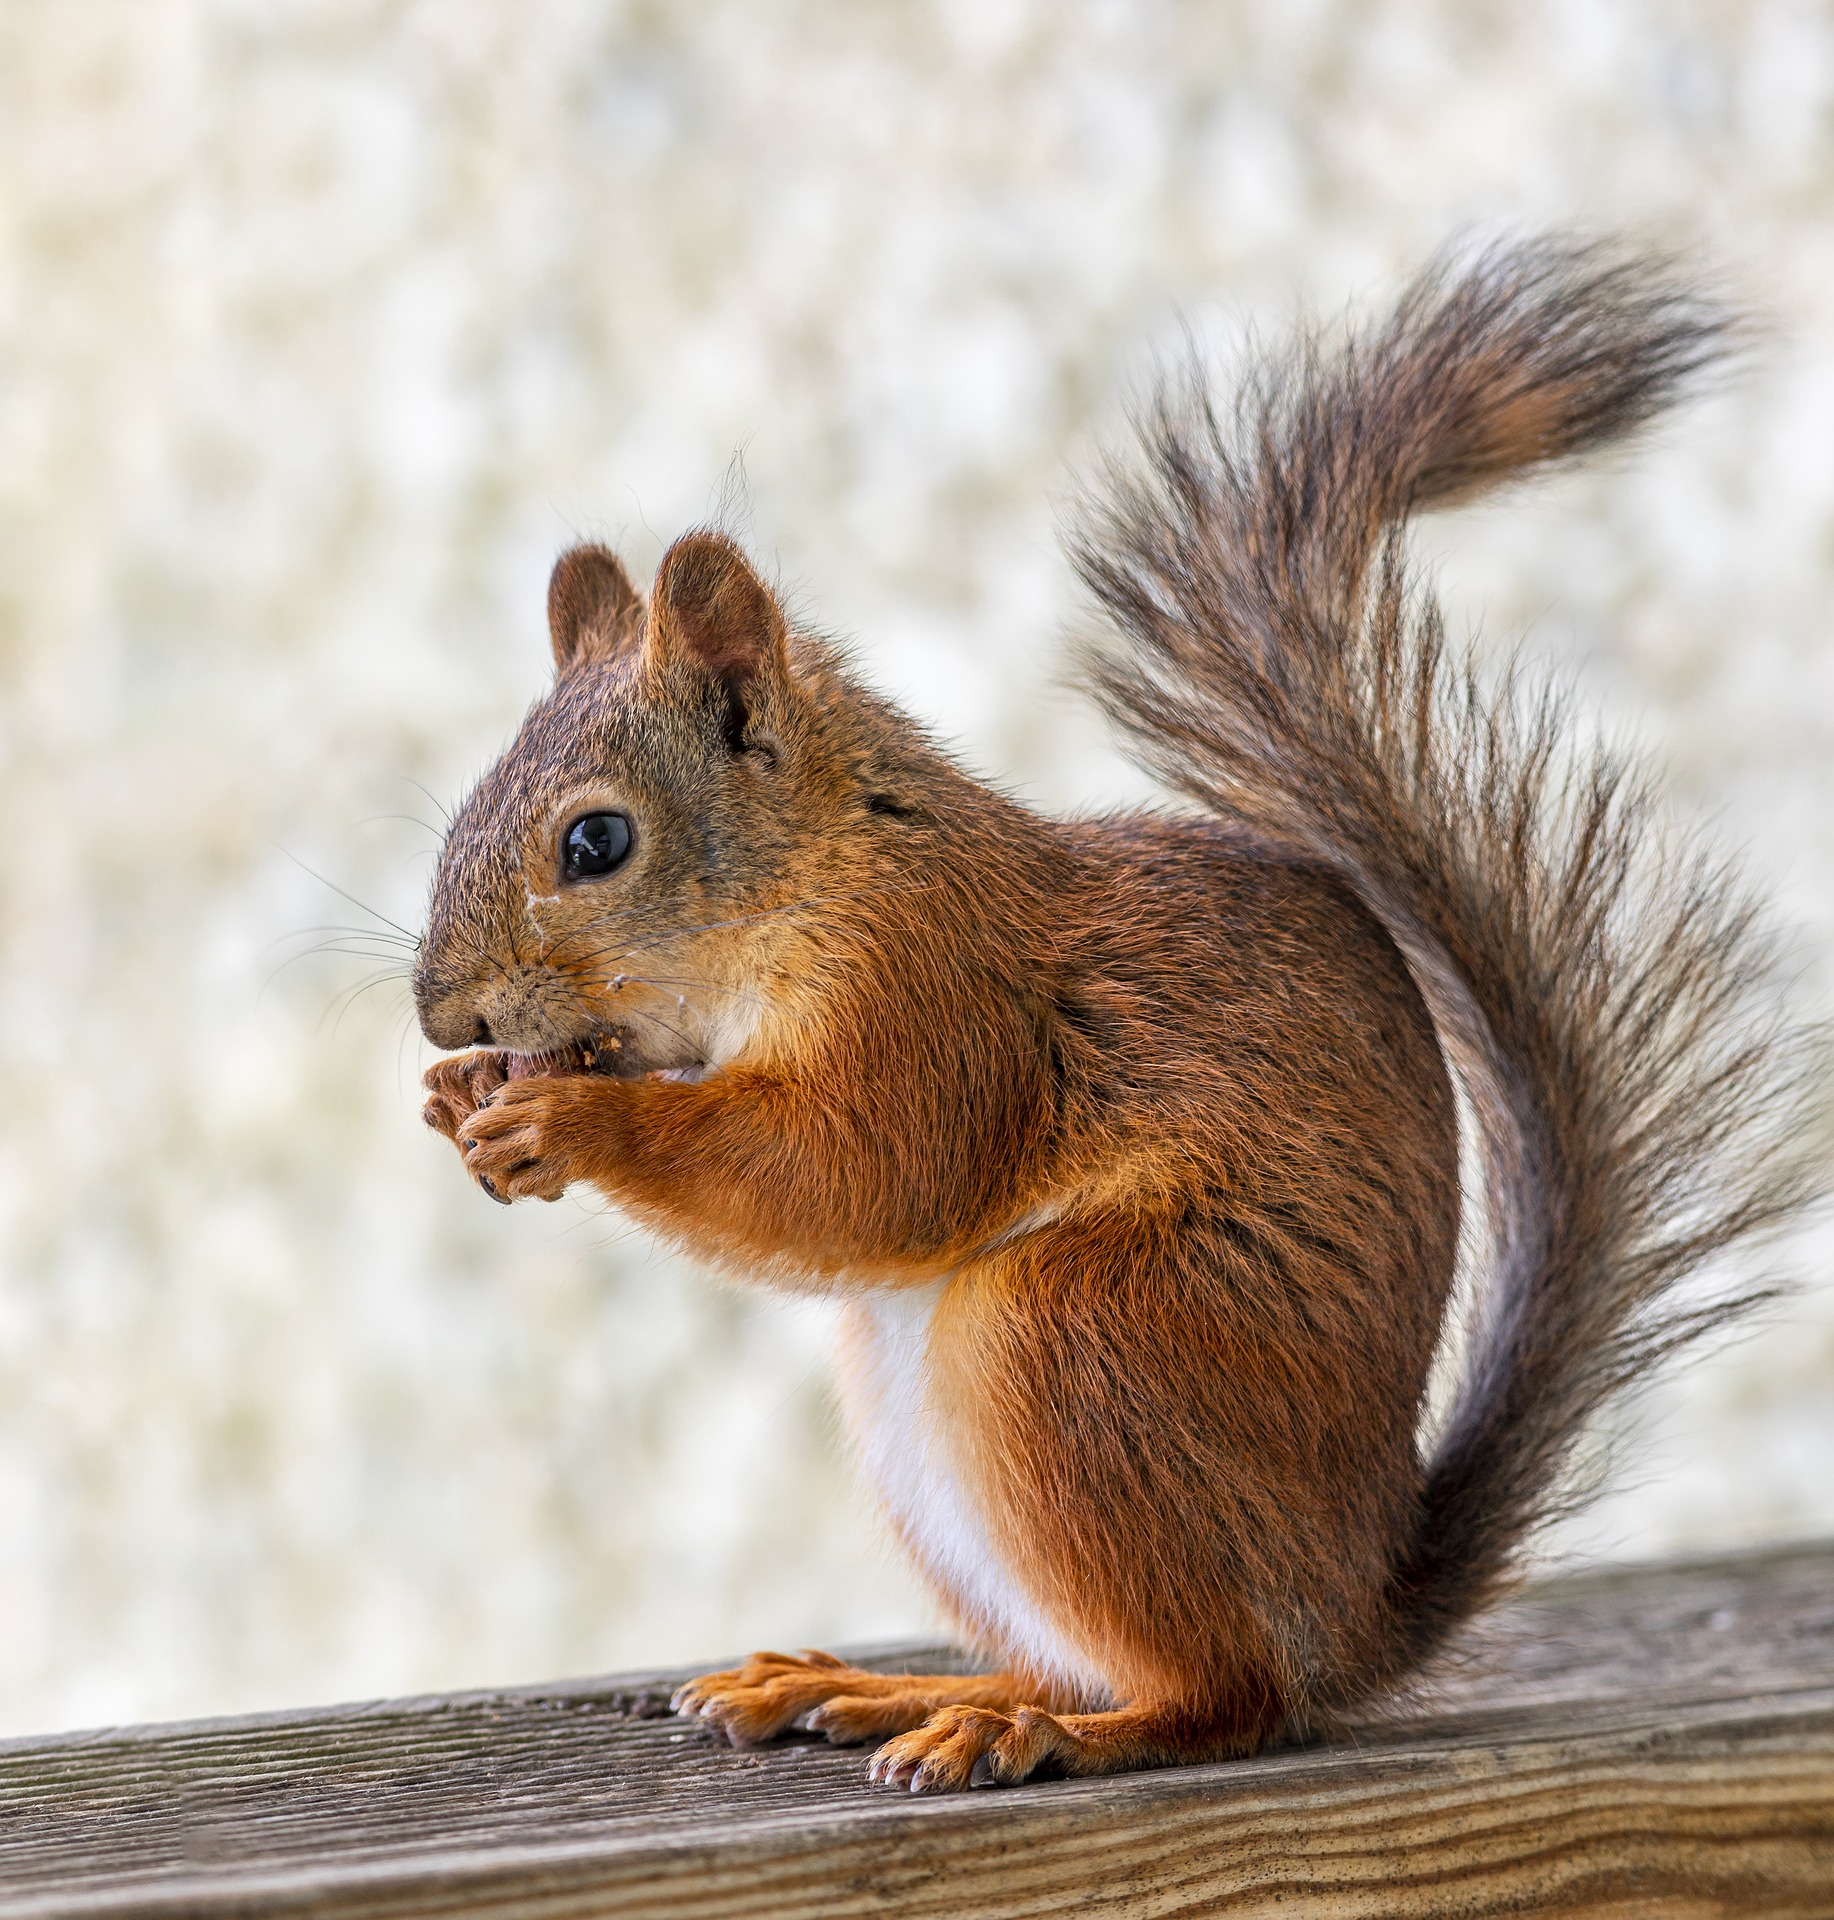 Picture of a red squirrel eating nuts